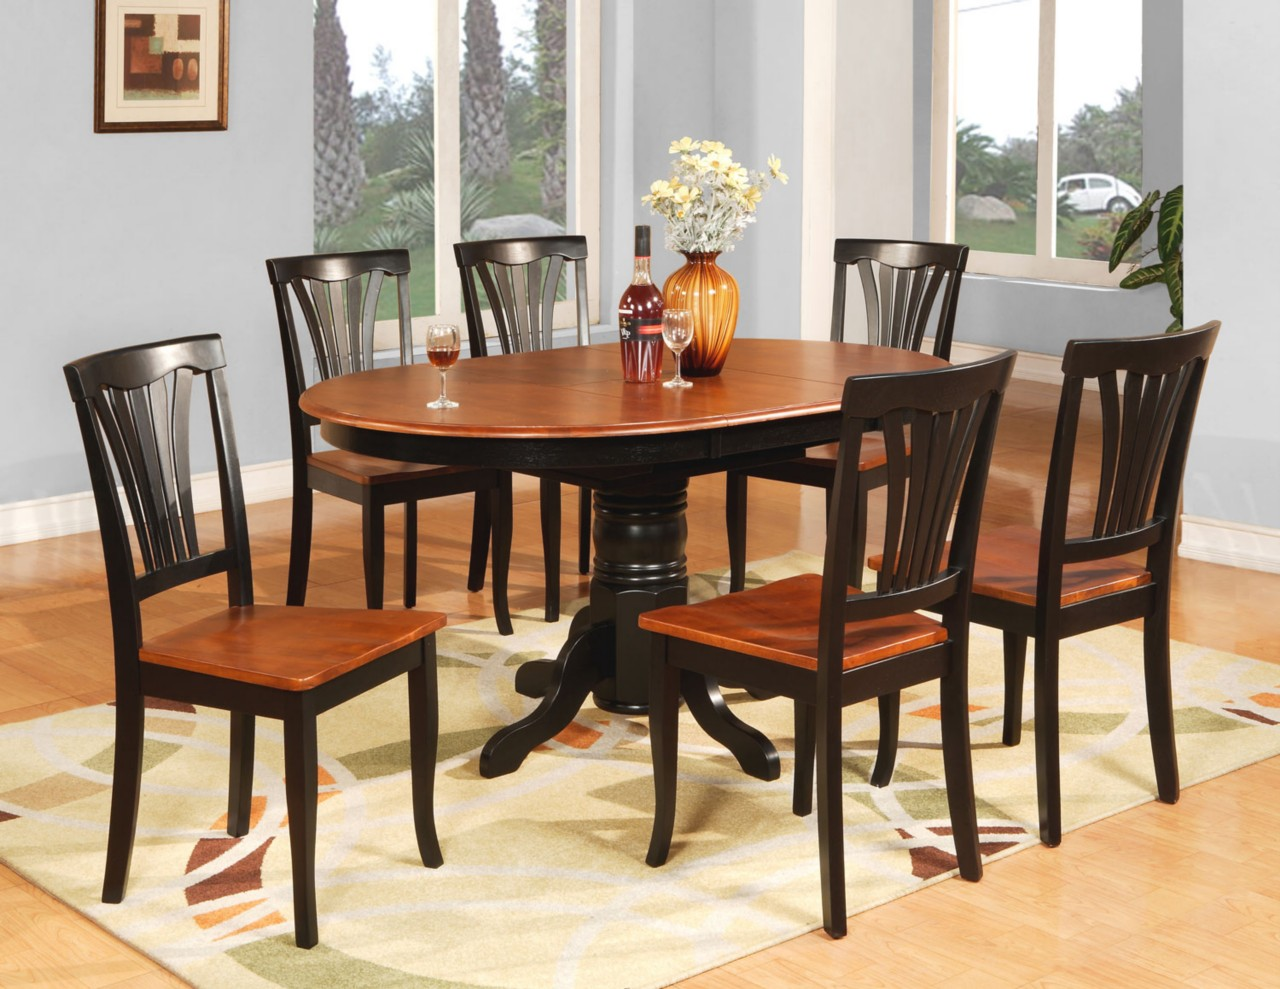 7 pc oval dinette kitchen dining room table 6 chairs ebay for Dining room sets for 6